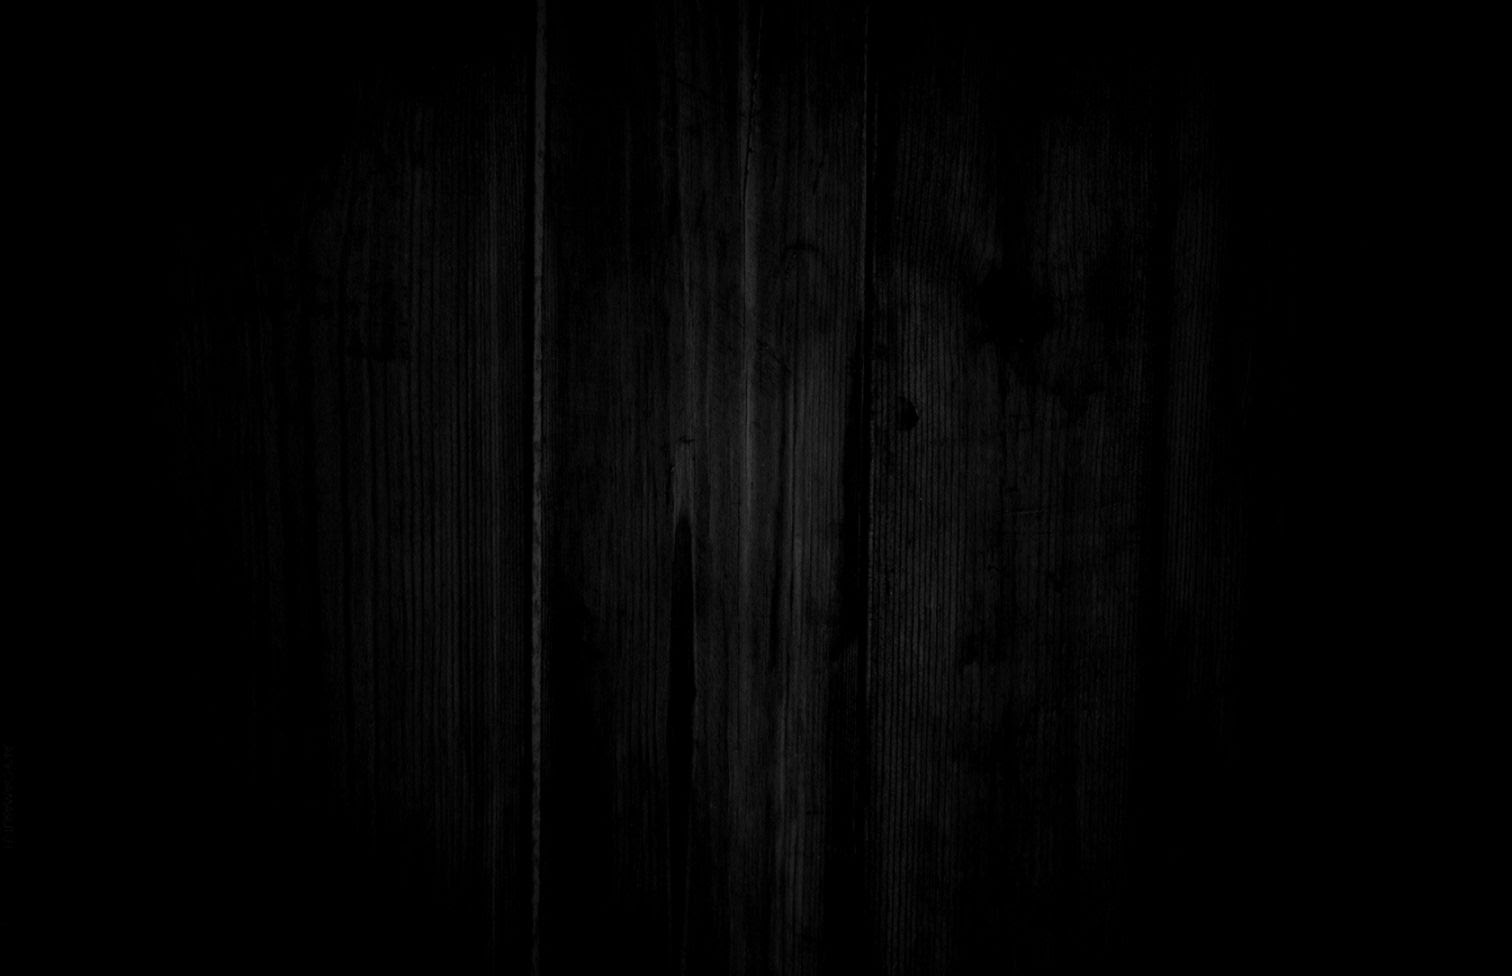 black wallpapers background home - photo #10